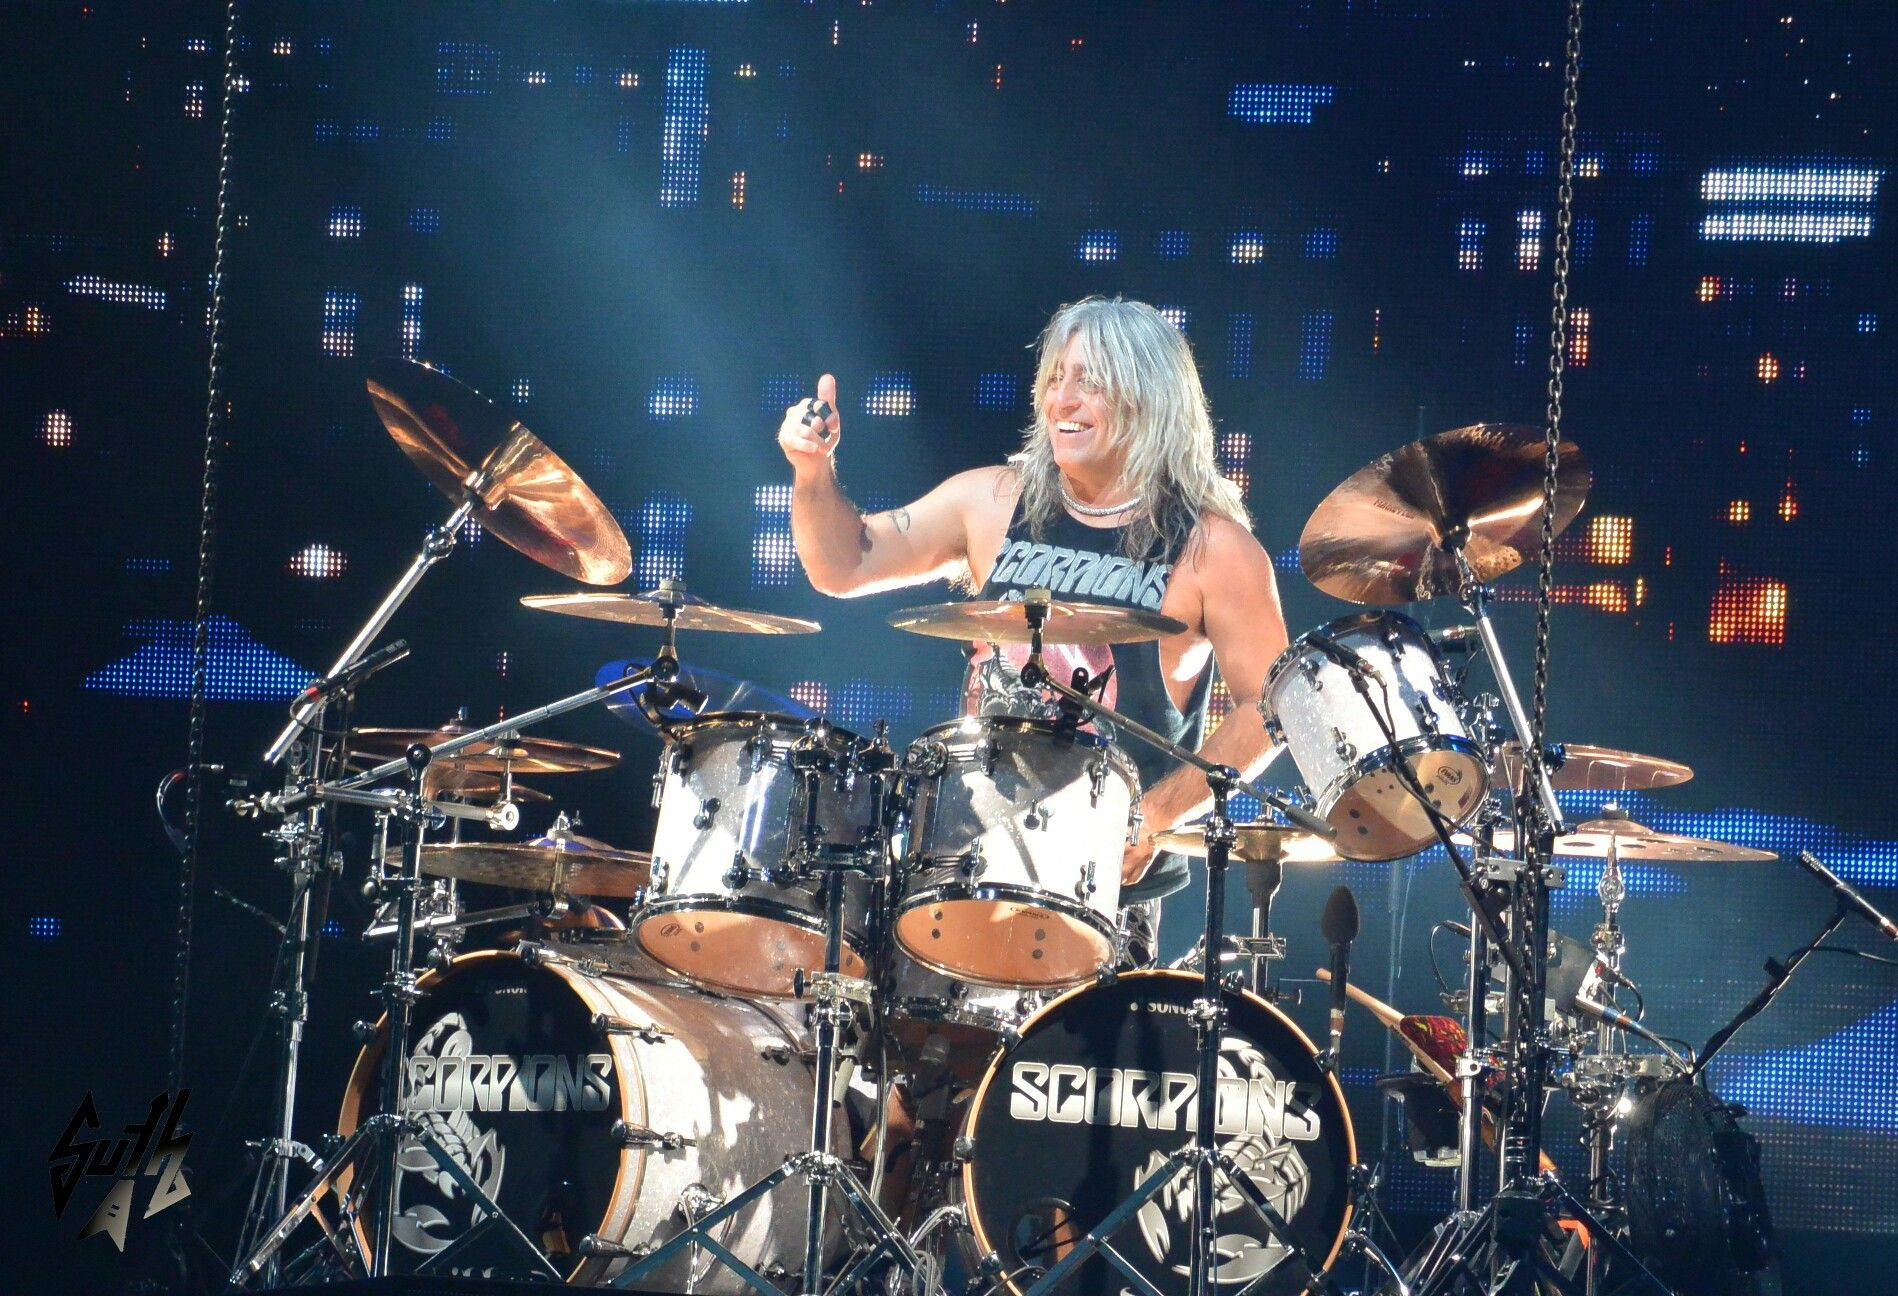 Mikkey Dee with the scorpions in Oakland | Mikkey dee, Drum kits ...